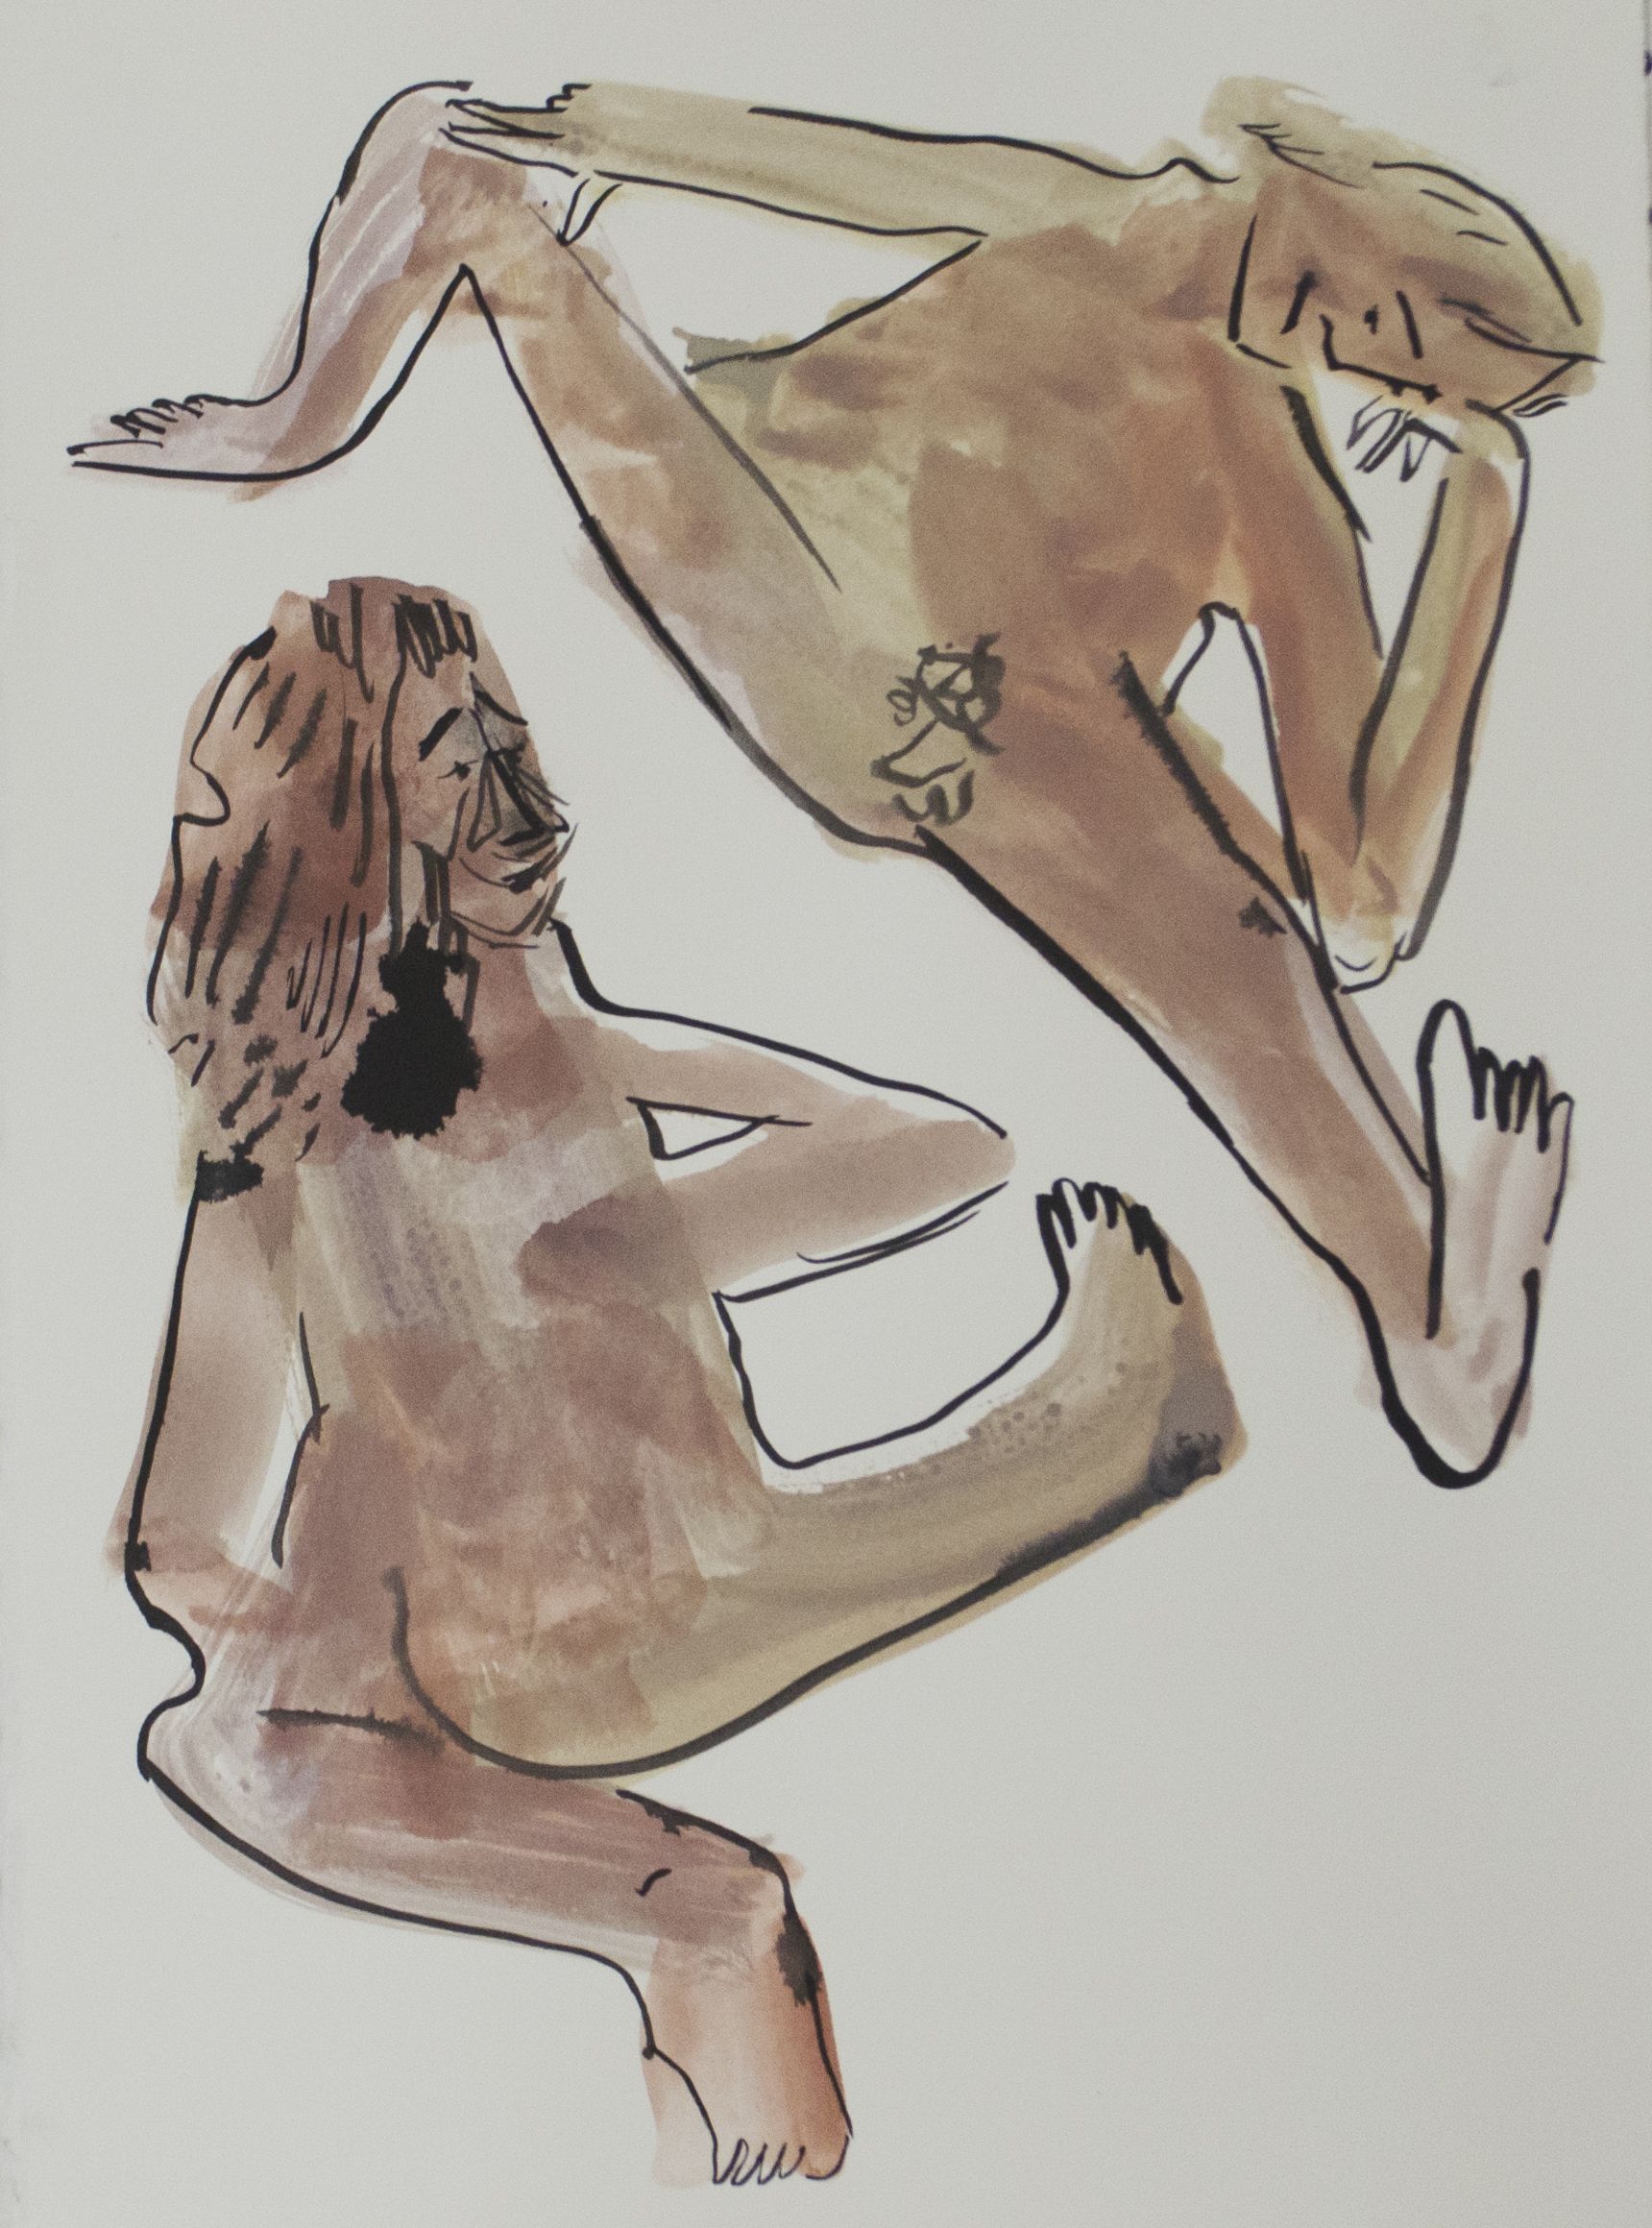 Two Pink Figures, 11 x 15 inches, watercolor and ink on paper, 2017.